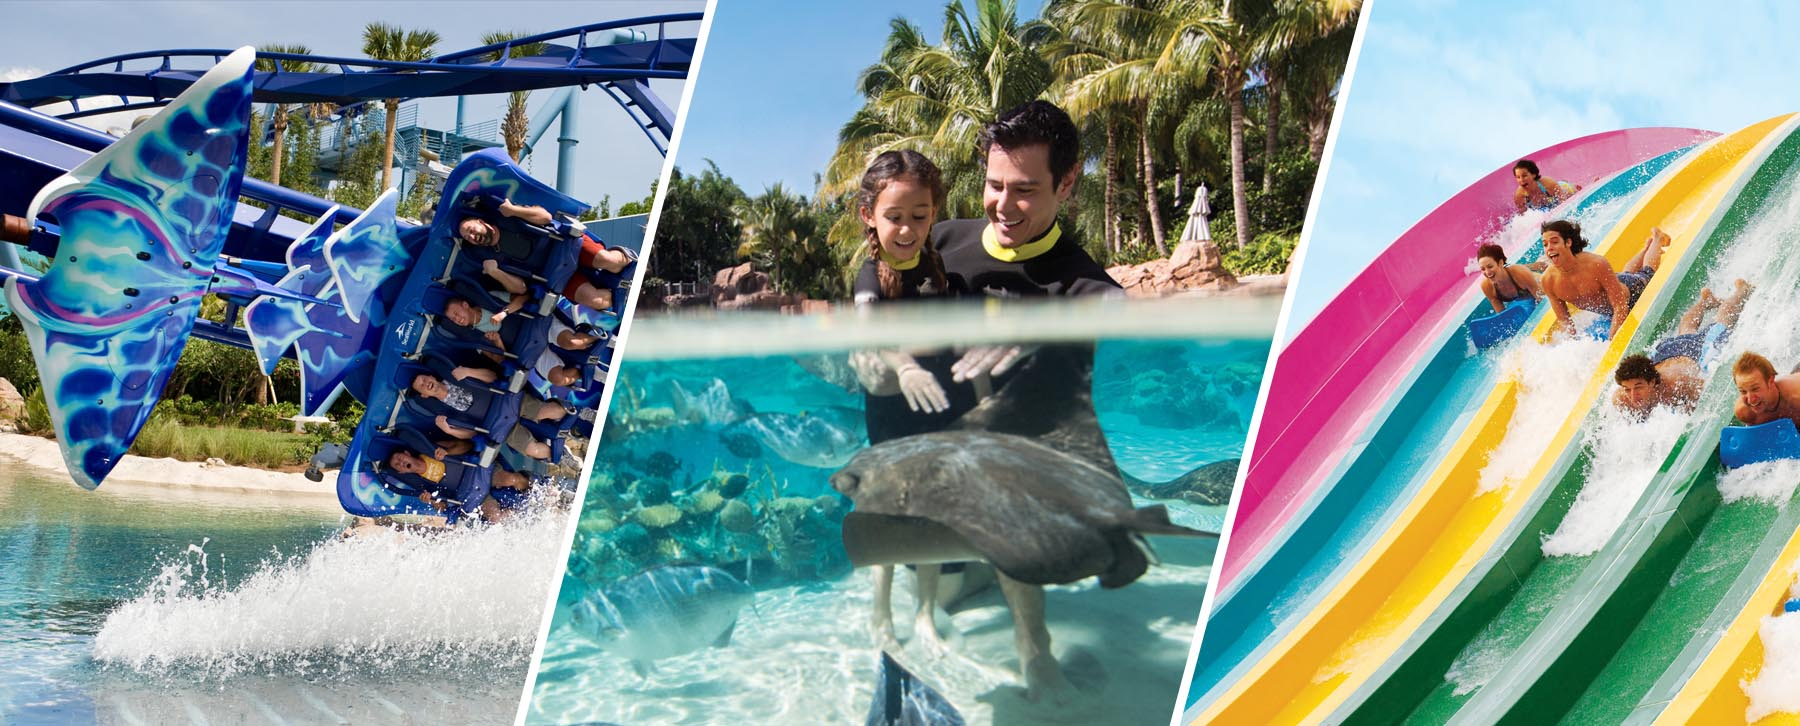 VIsit SeaWorld, Discovery Cove and Aquatica